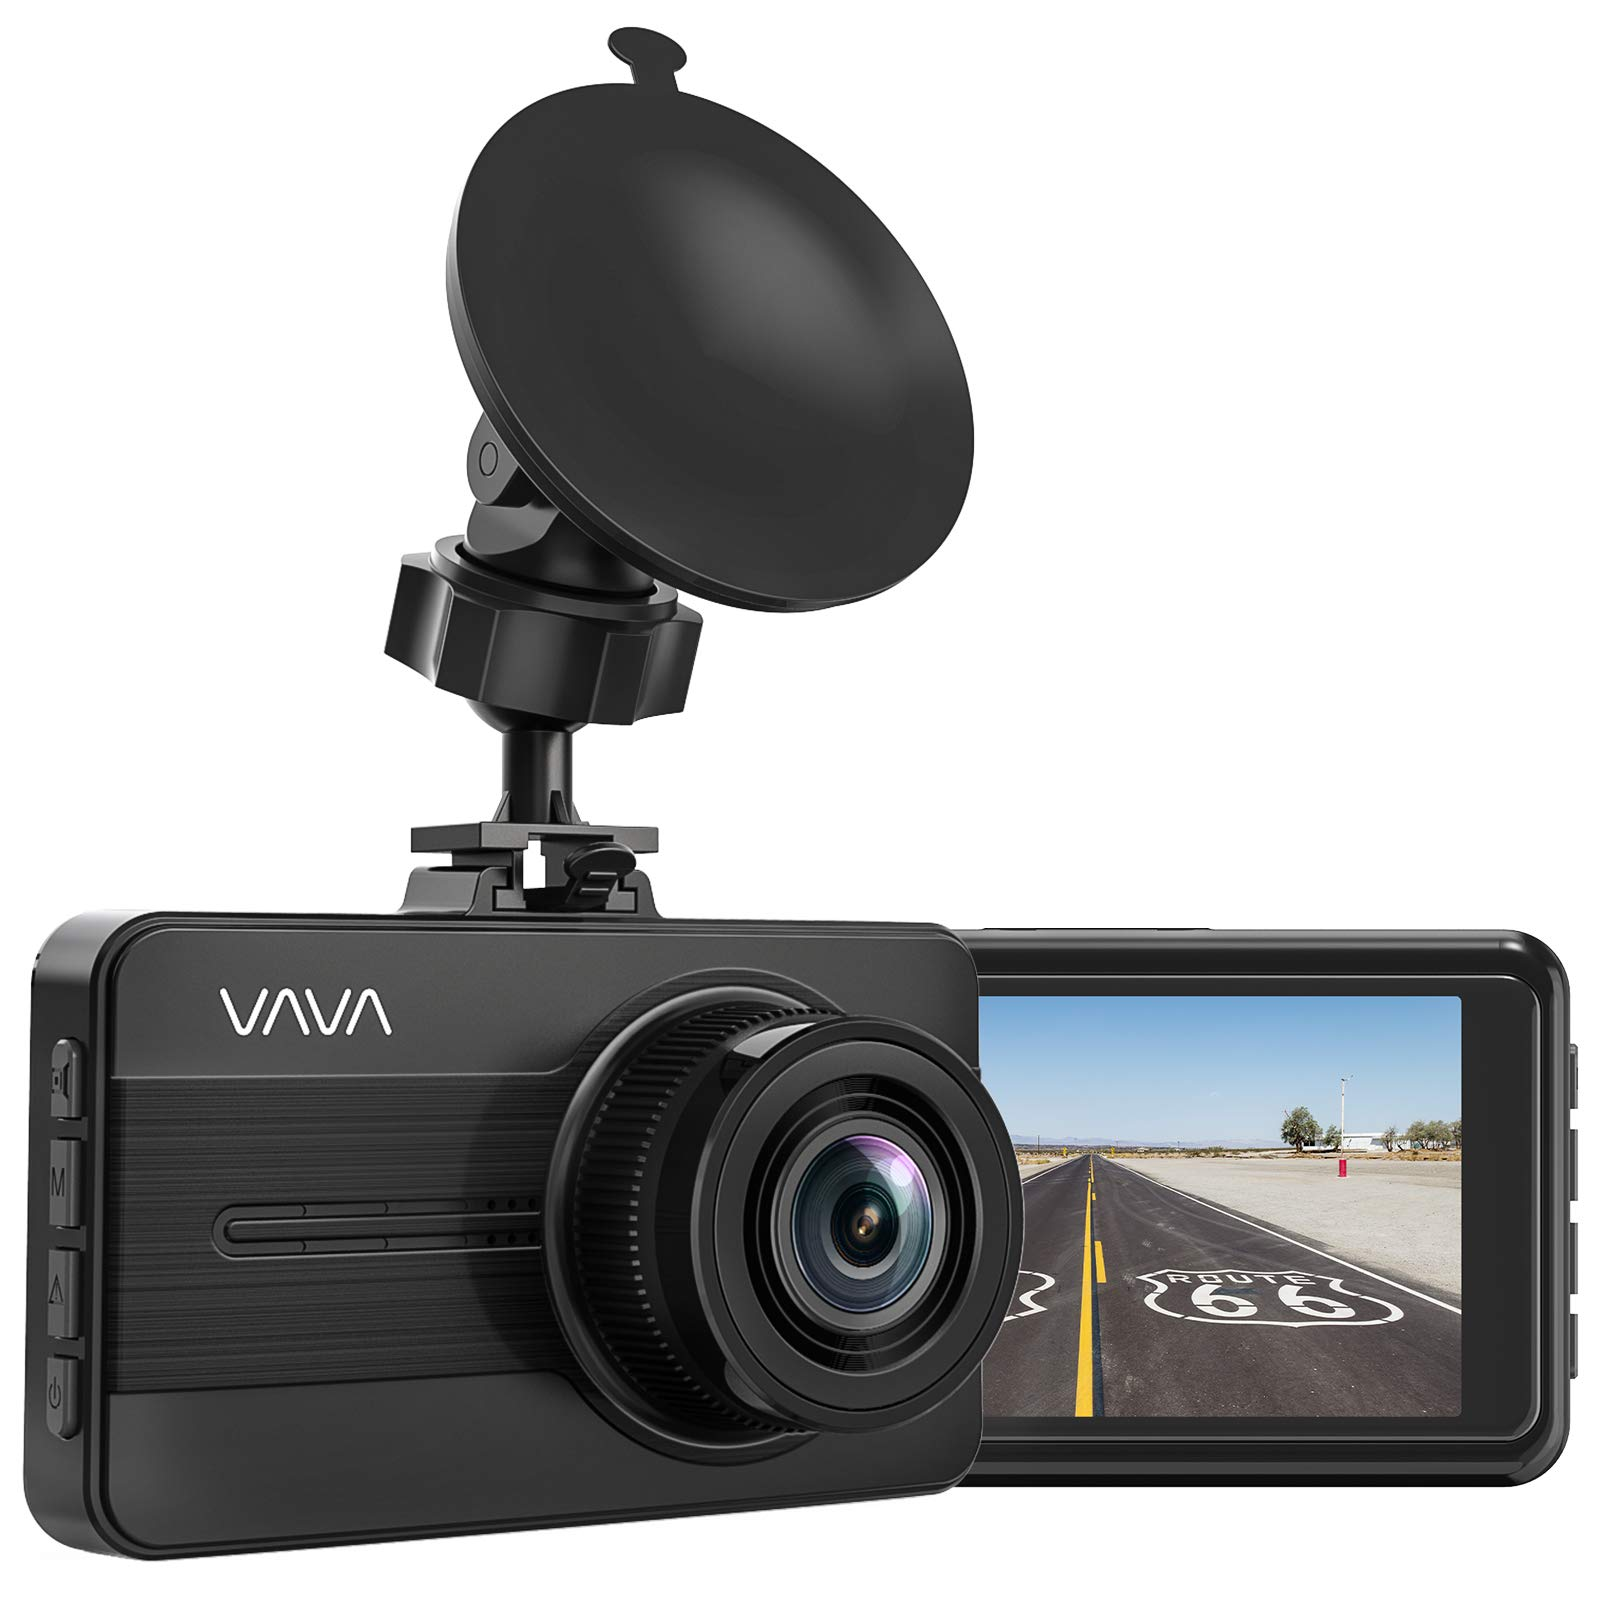 VAVA Dash Cam 1080P Full HD Car DVR Dashboard Camera, Driving Recorder with 3 Inch LCD Screen, Motion Detection, Loop Recording, Black